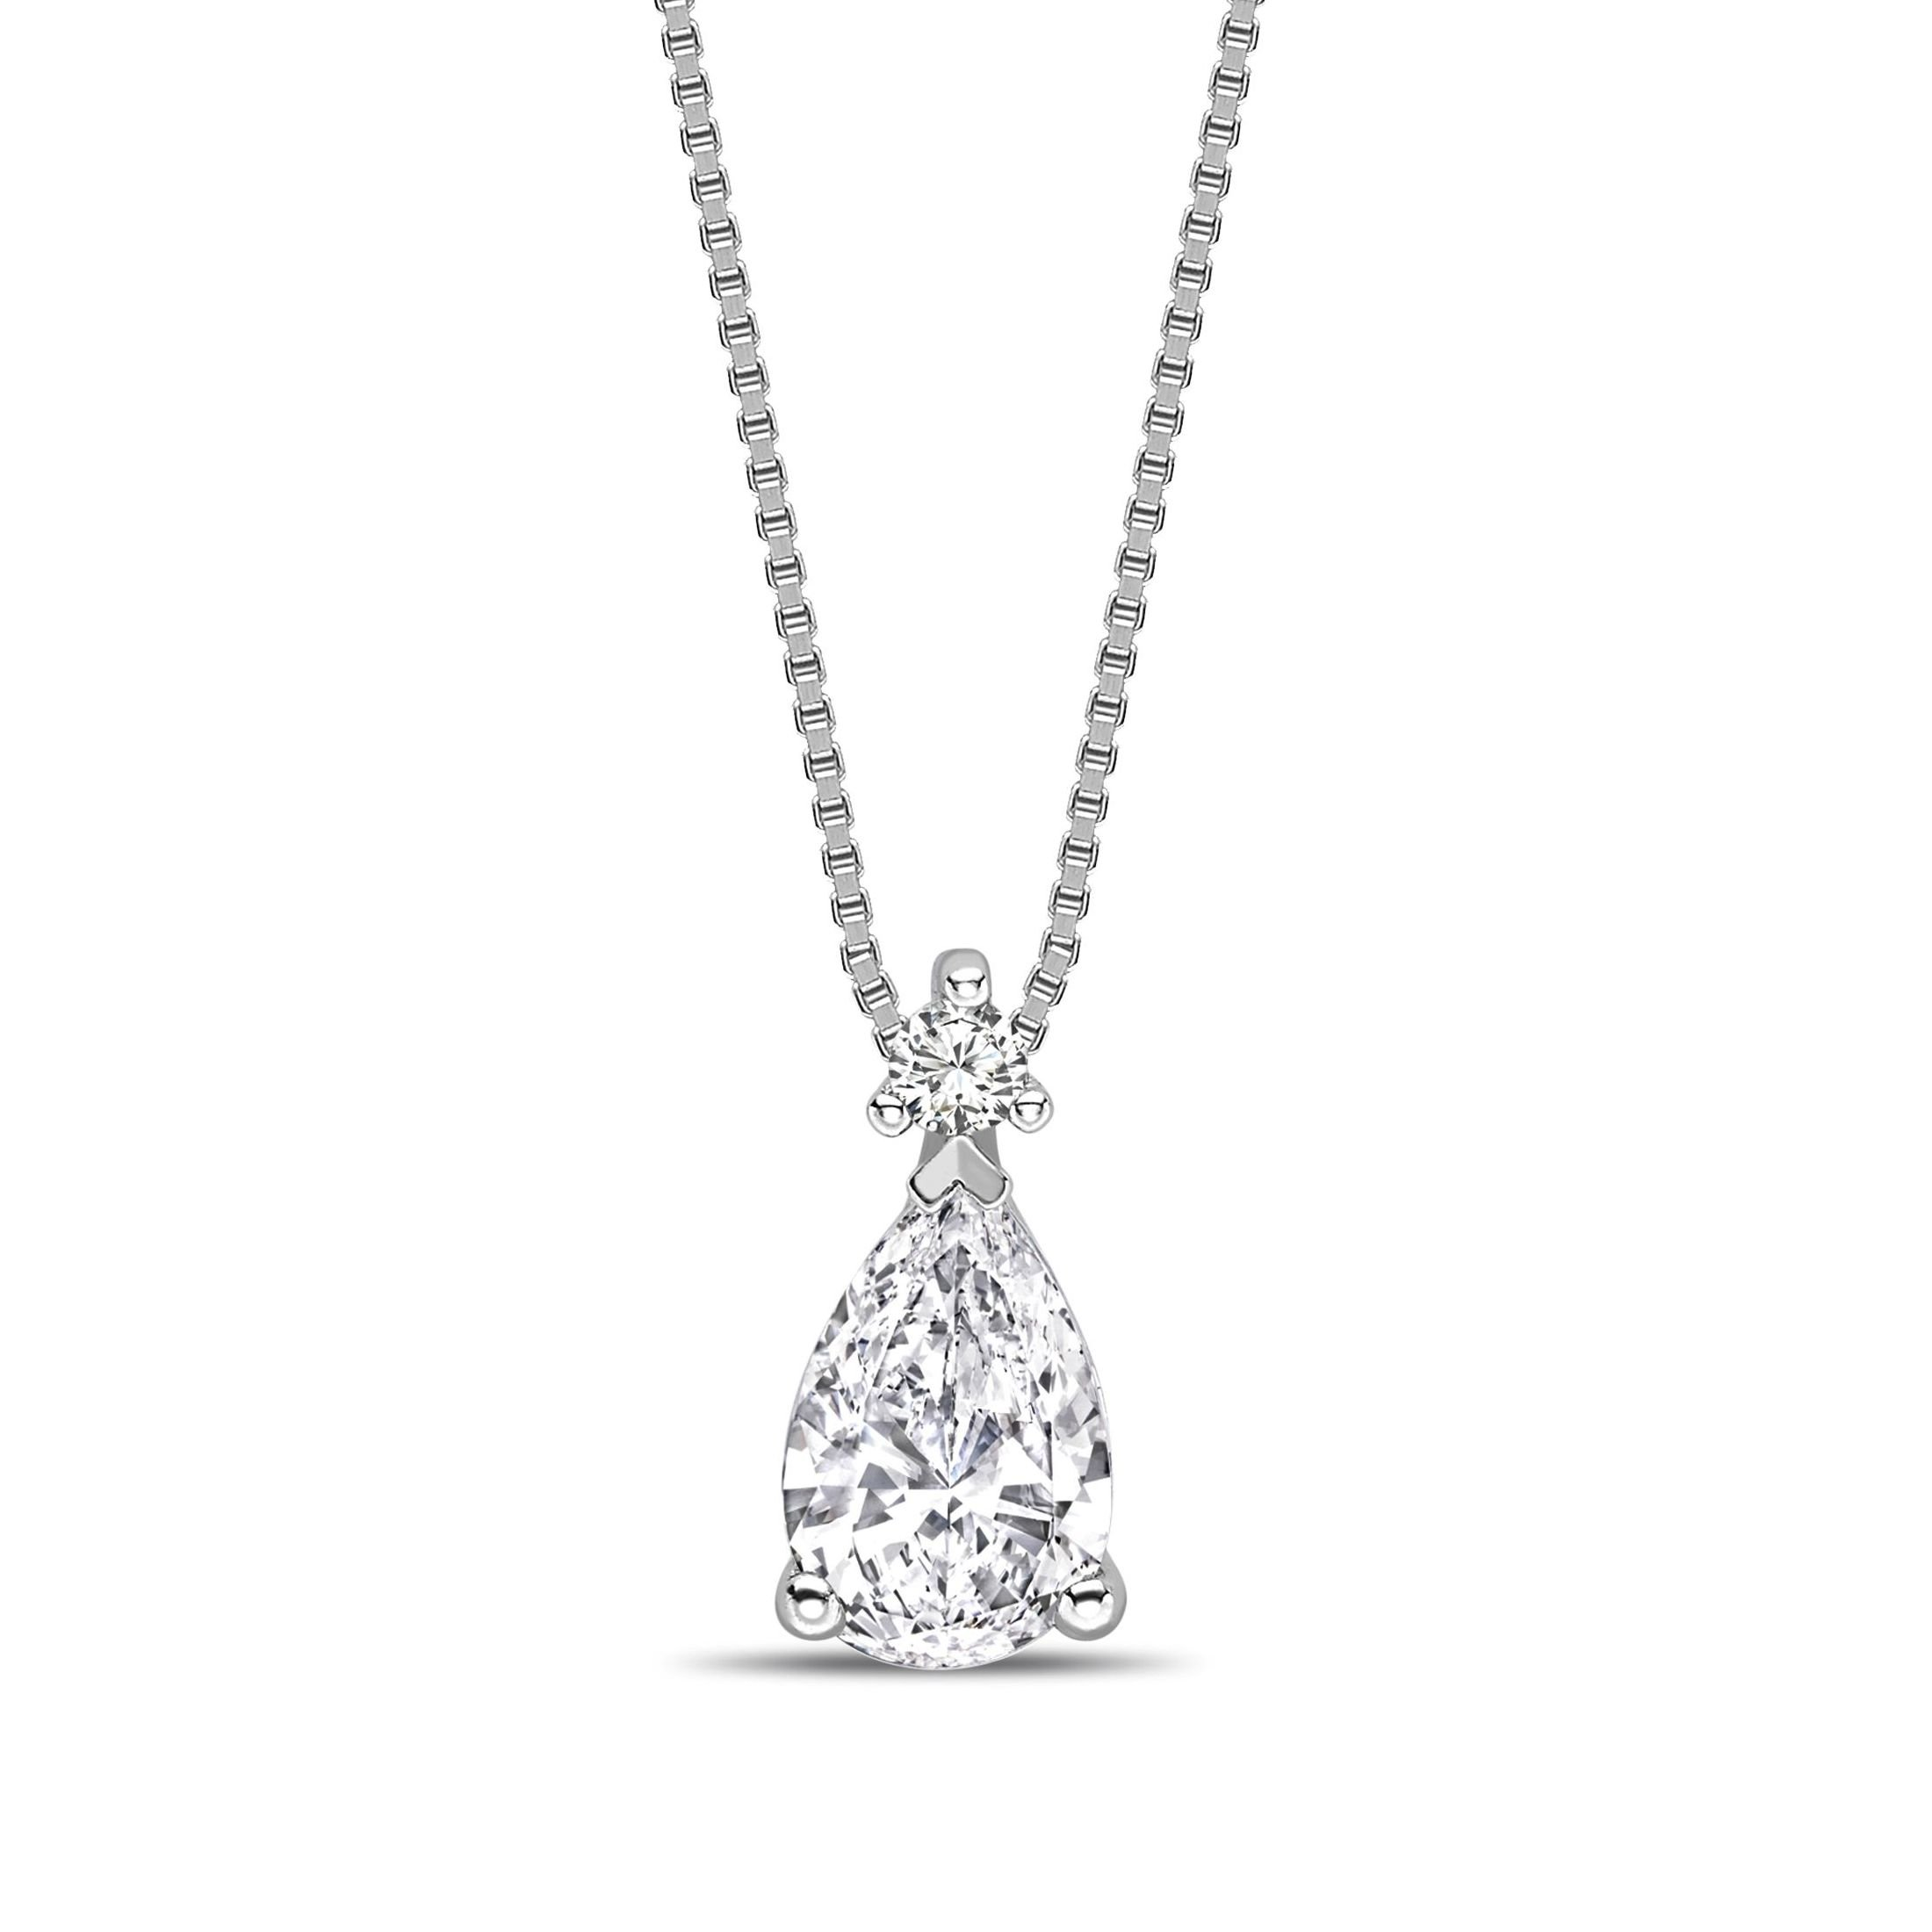 Modern Design Pear Shape Solitaire Diamond Necklace